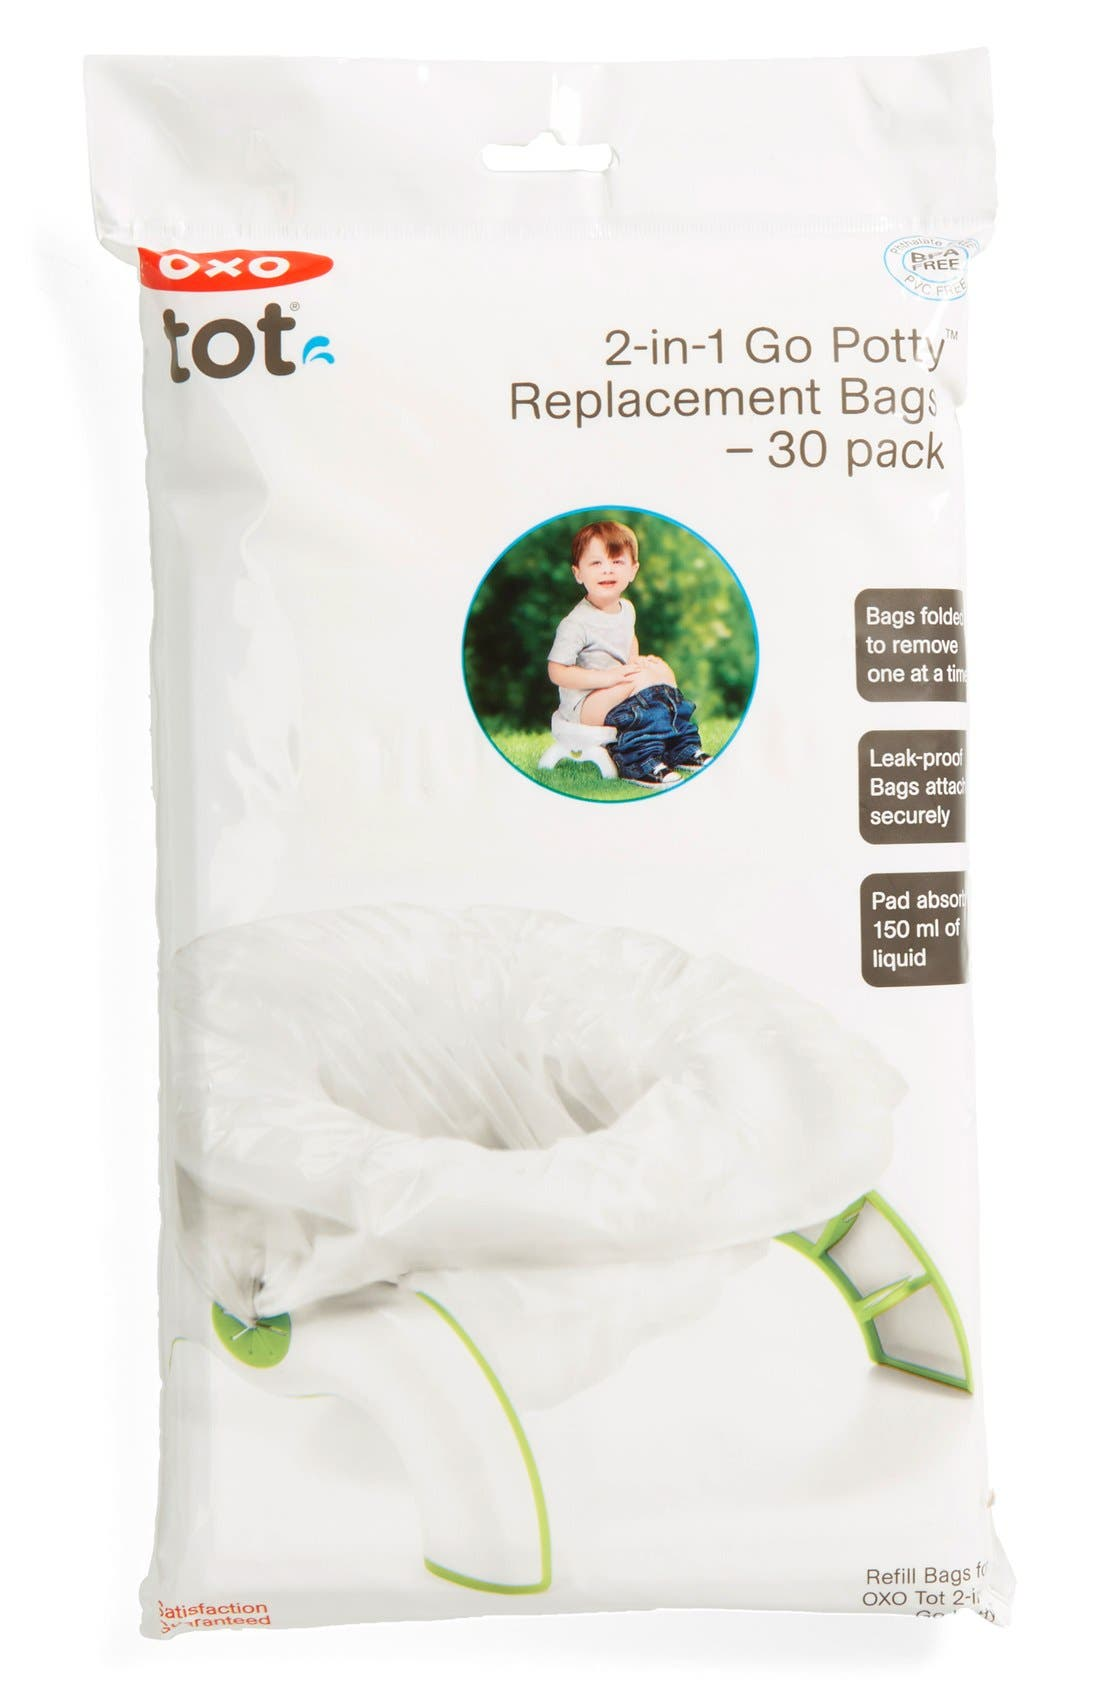 Main Image - OXO Tot '2-in-1 Go Potty' Refill Bags